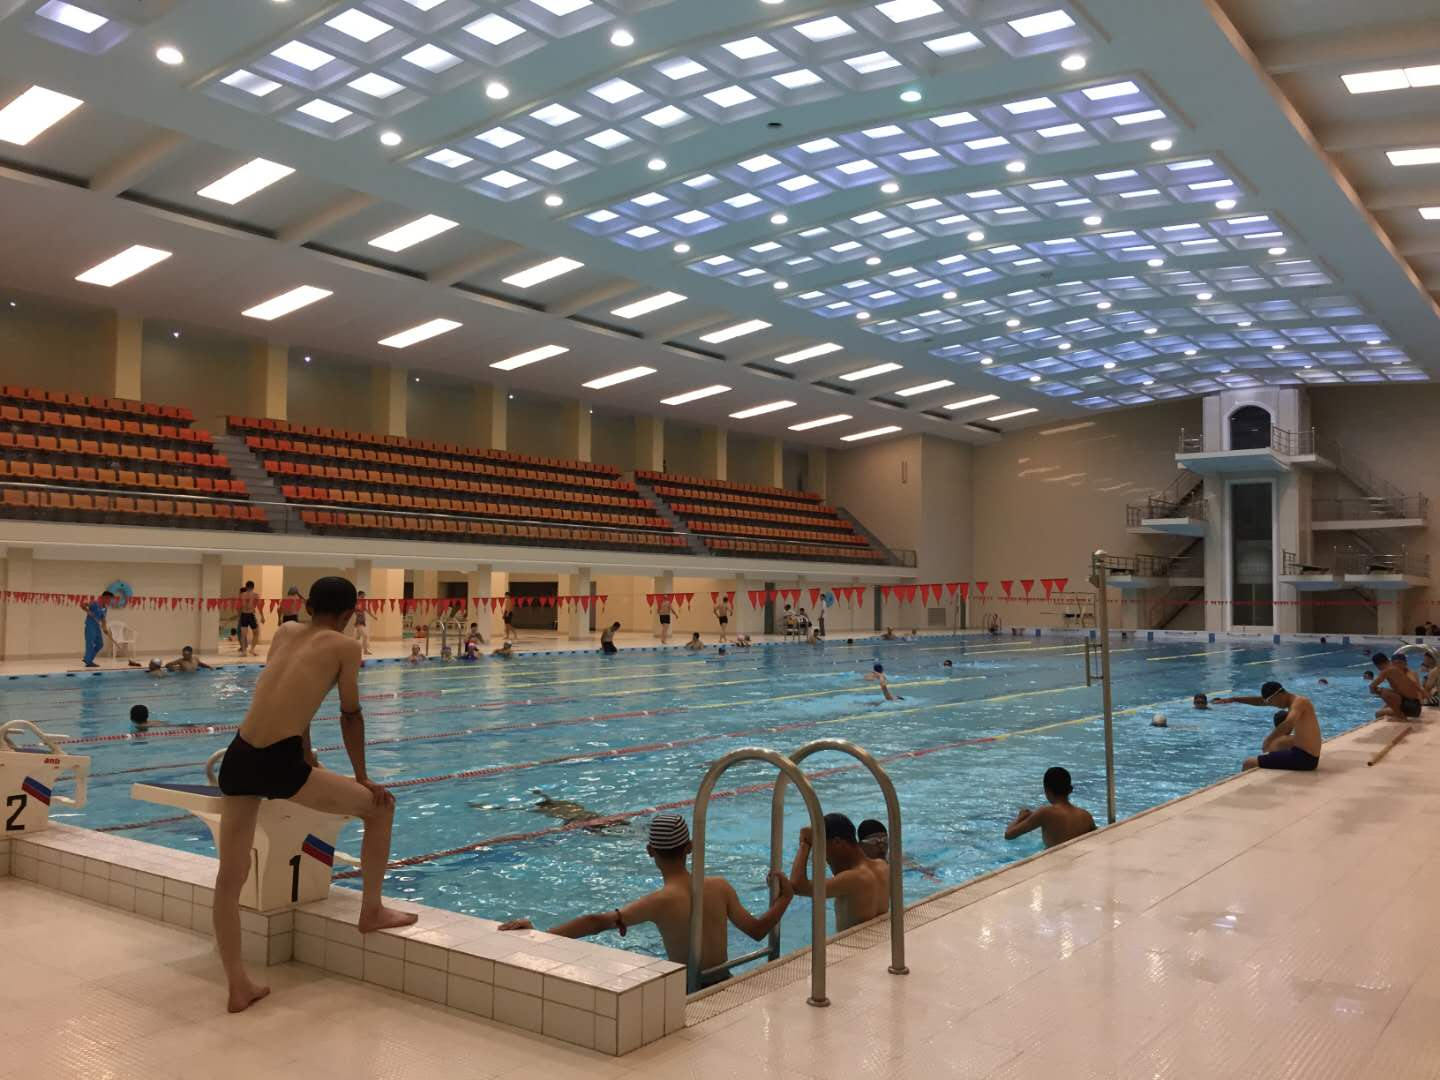 Swimming pool in Kim Il Sung University